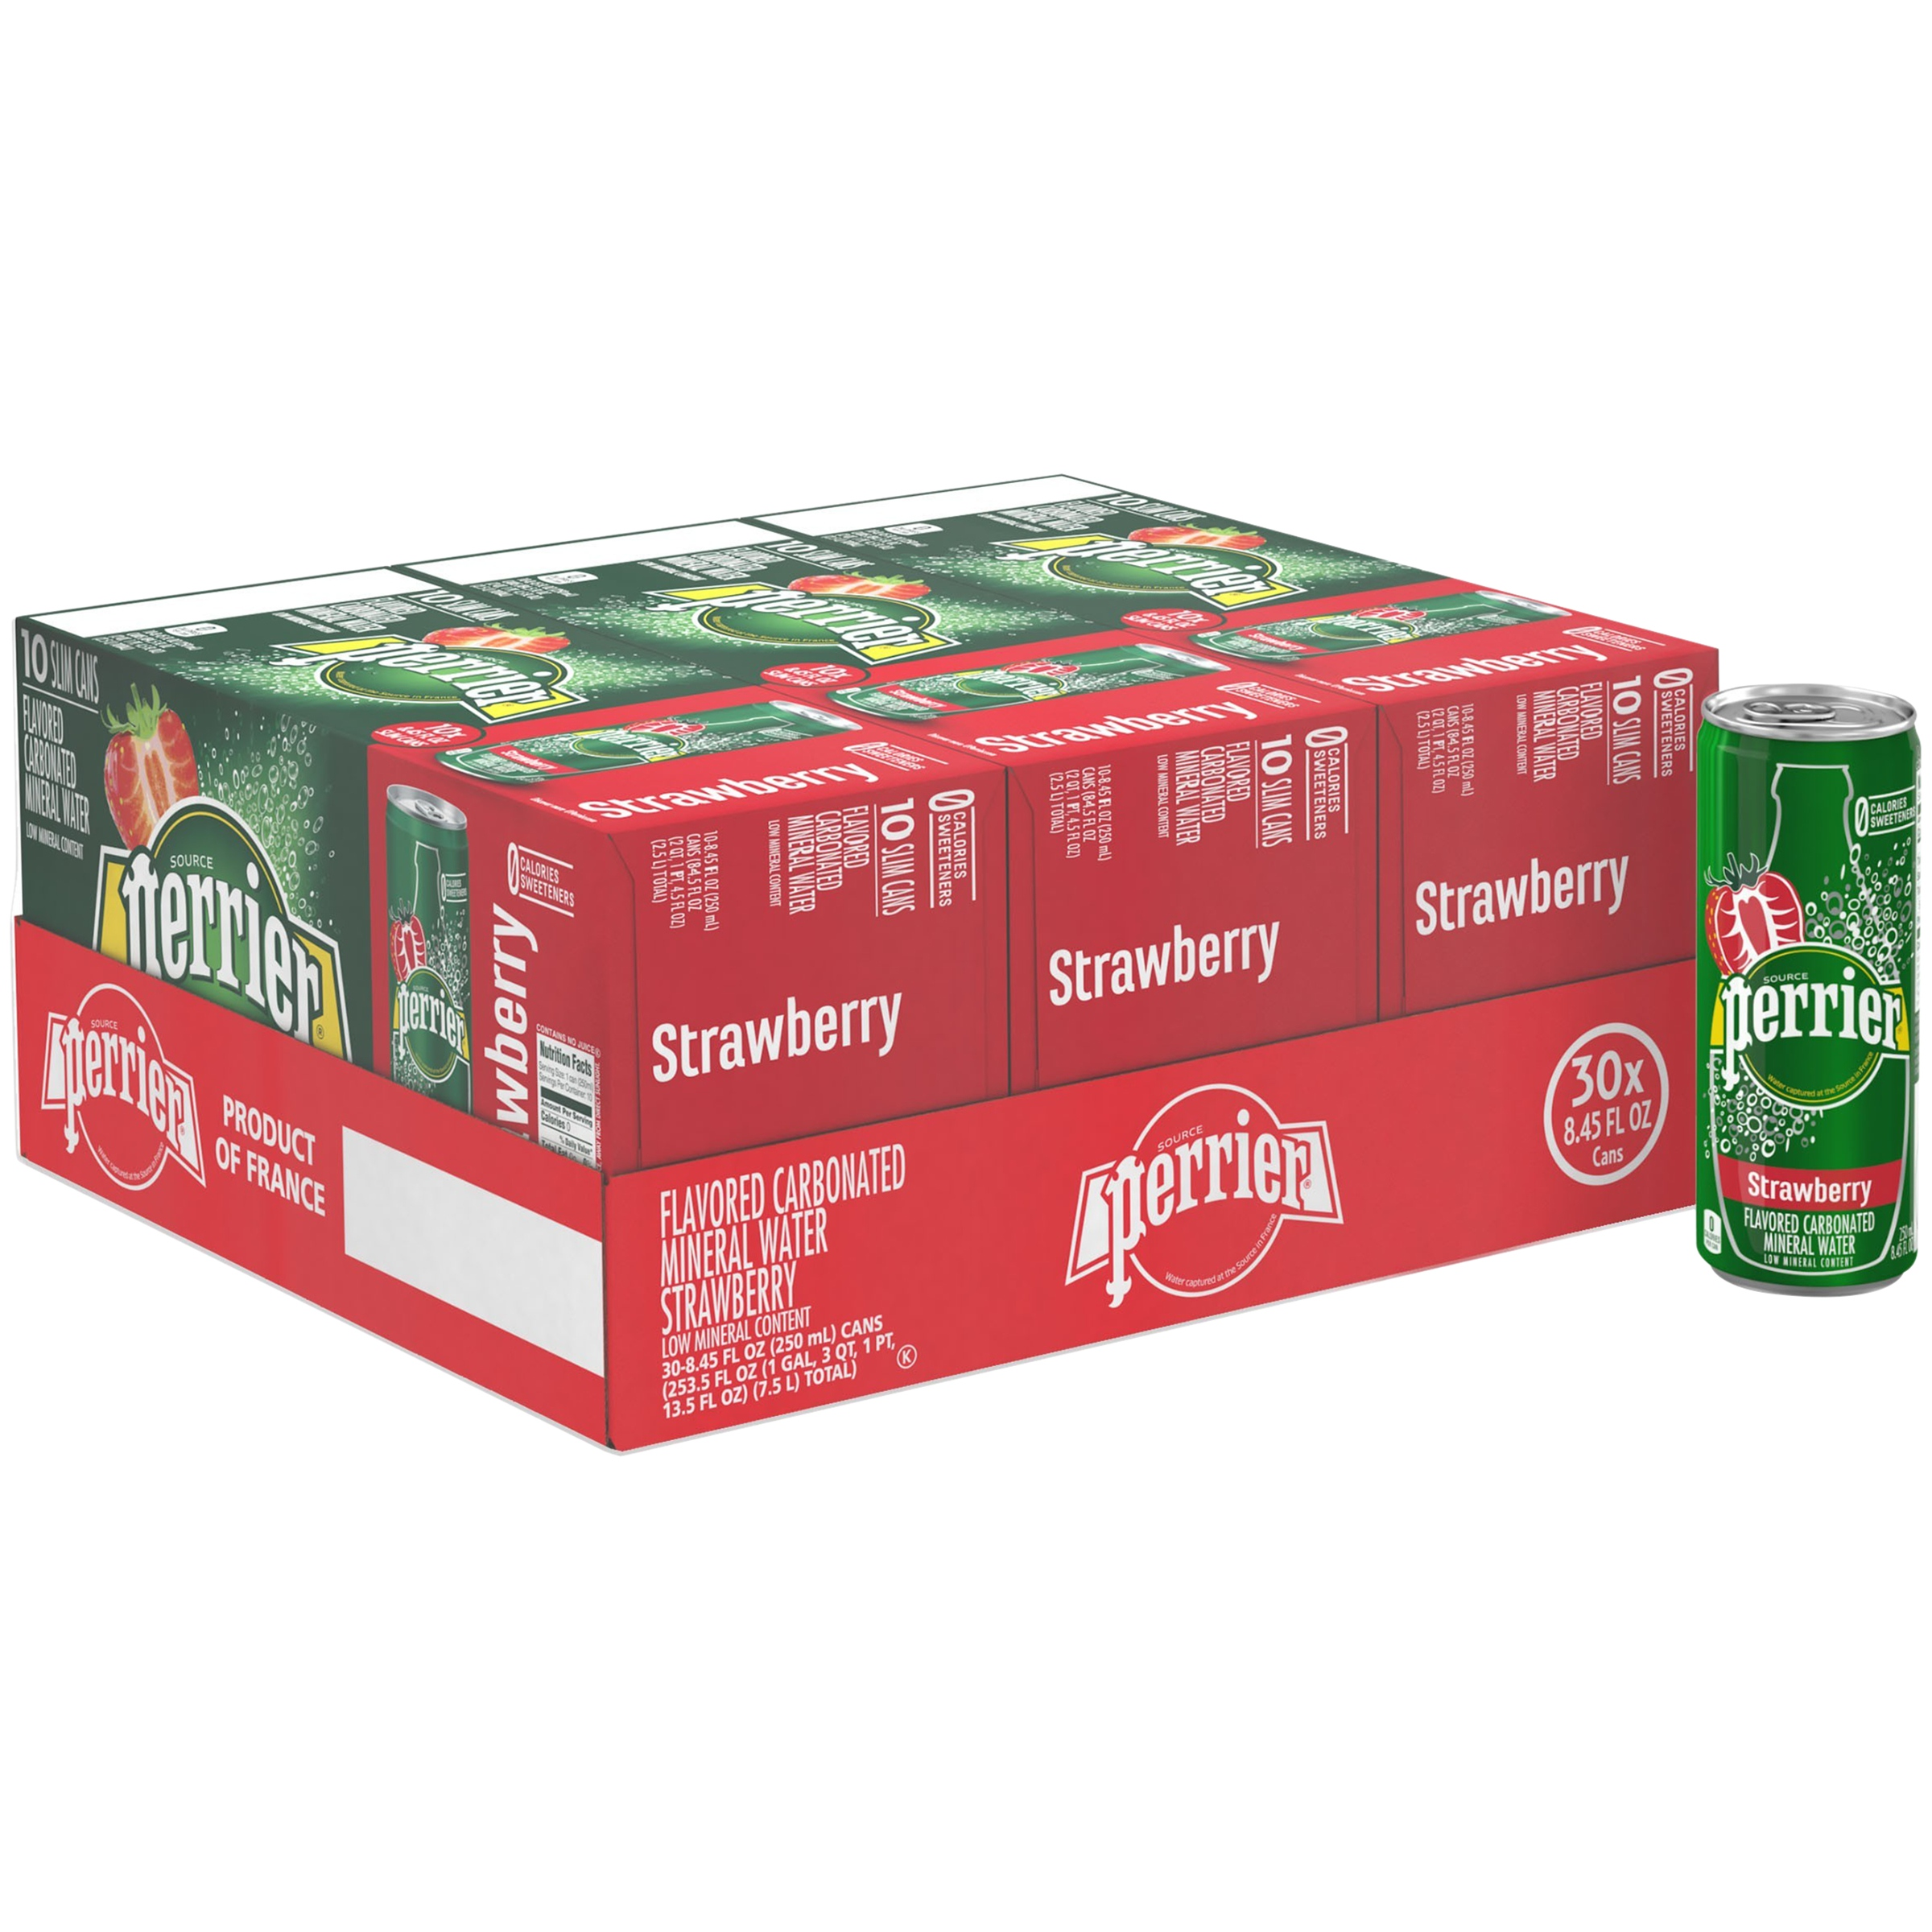 (30 Cans) PERRIER Strawberry Flavored Carbonated Mineral Water, 8.45 Fl Oz